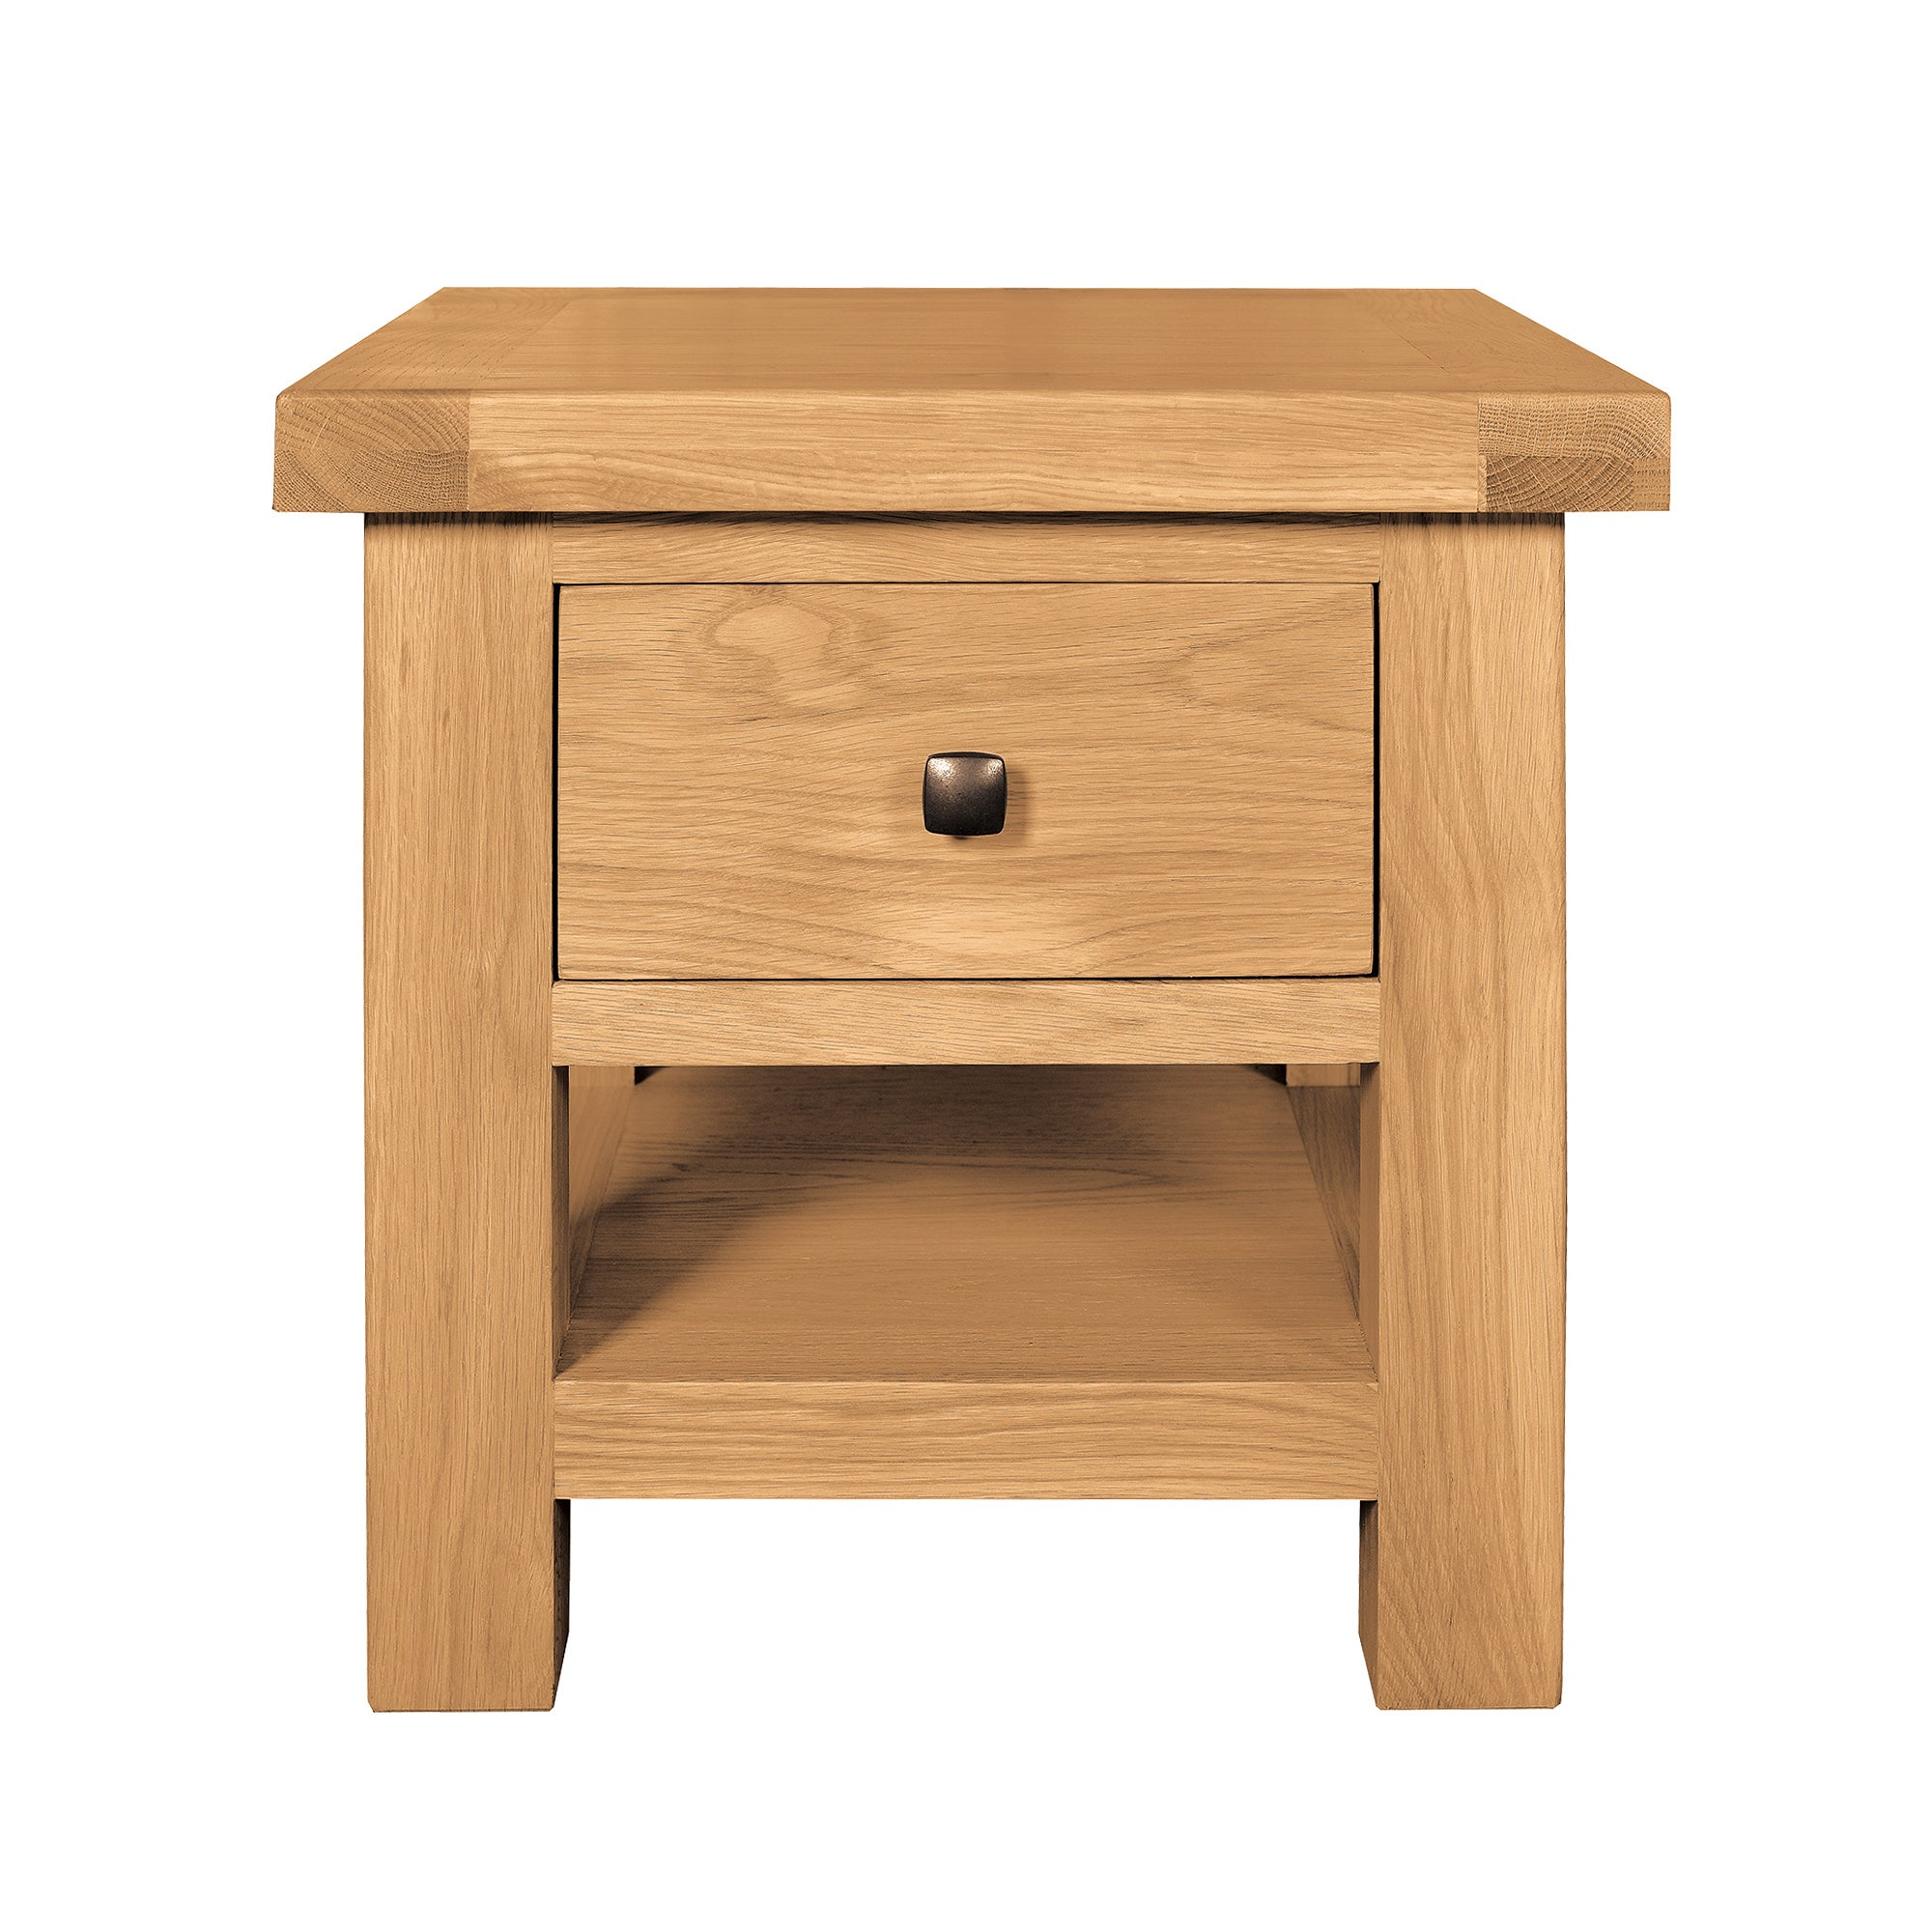 Harrogate Oak Lamp Table with Drawer